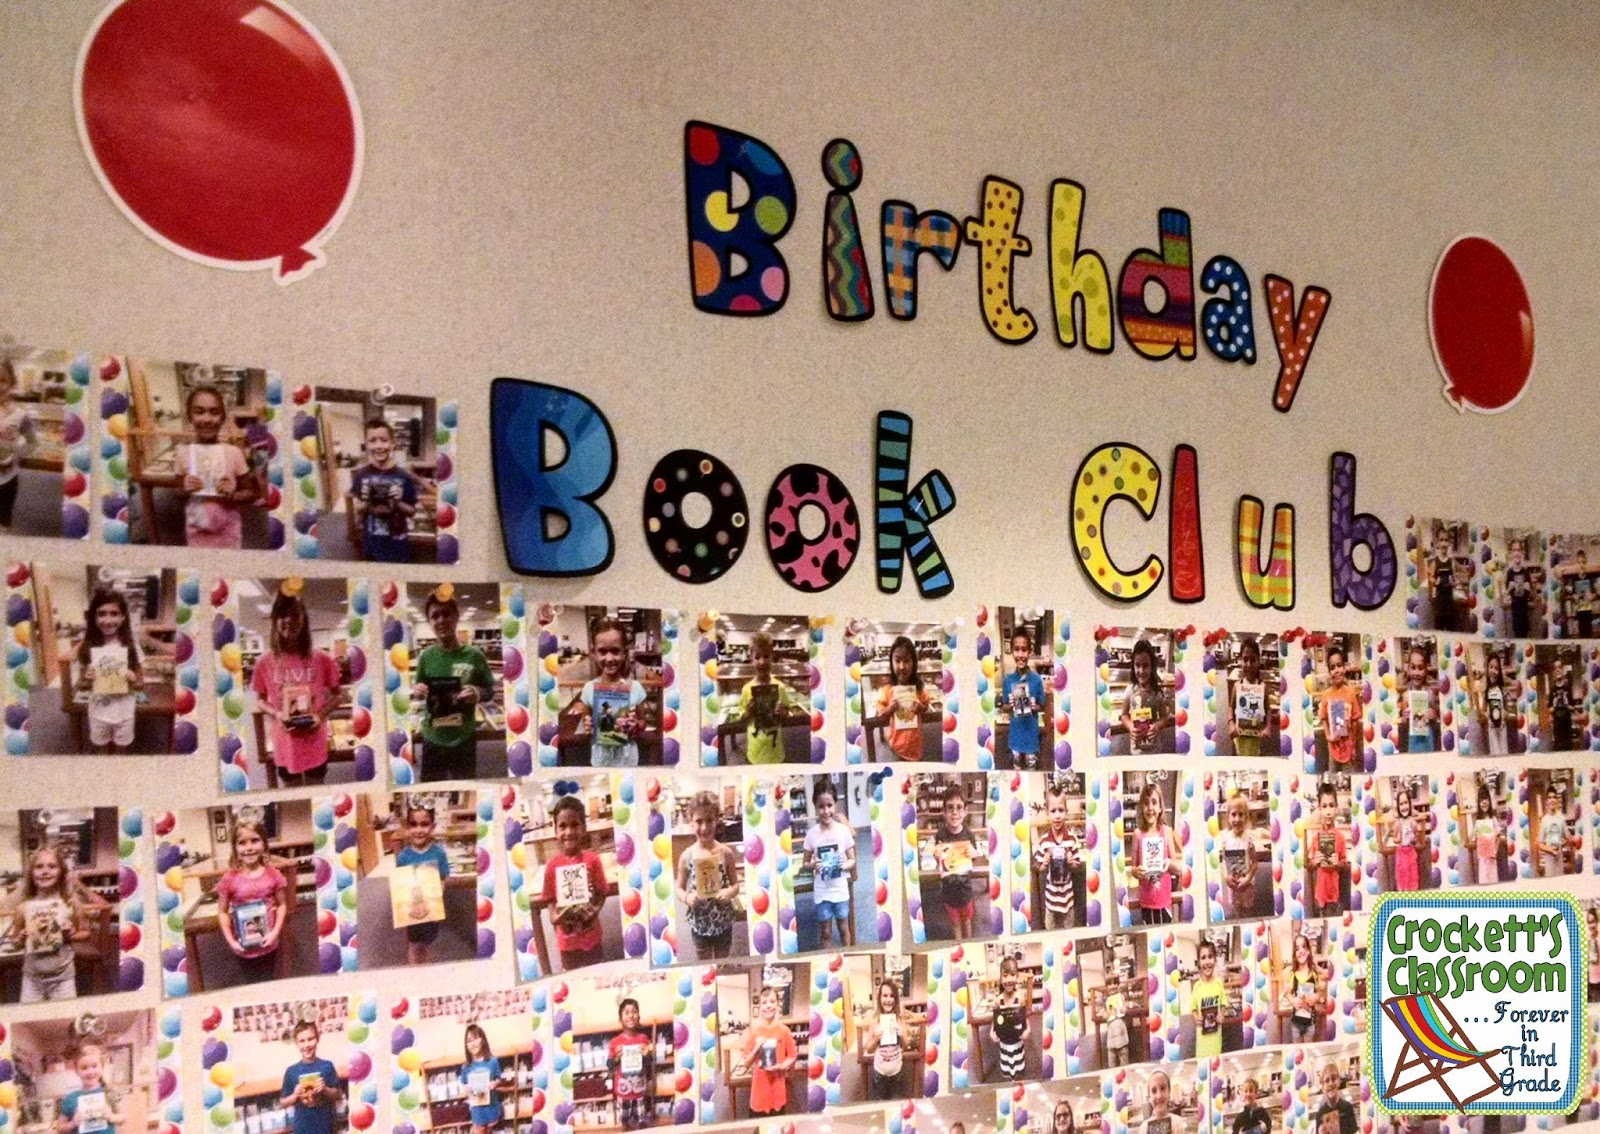 Why not celebrate reading and books at the same time? The Birthday Celebration Book Club is the perfect blending of birthdays and books.